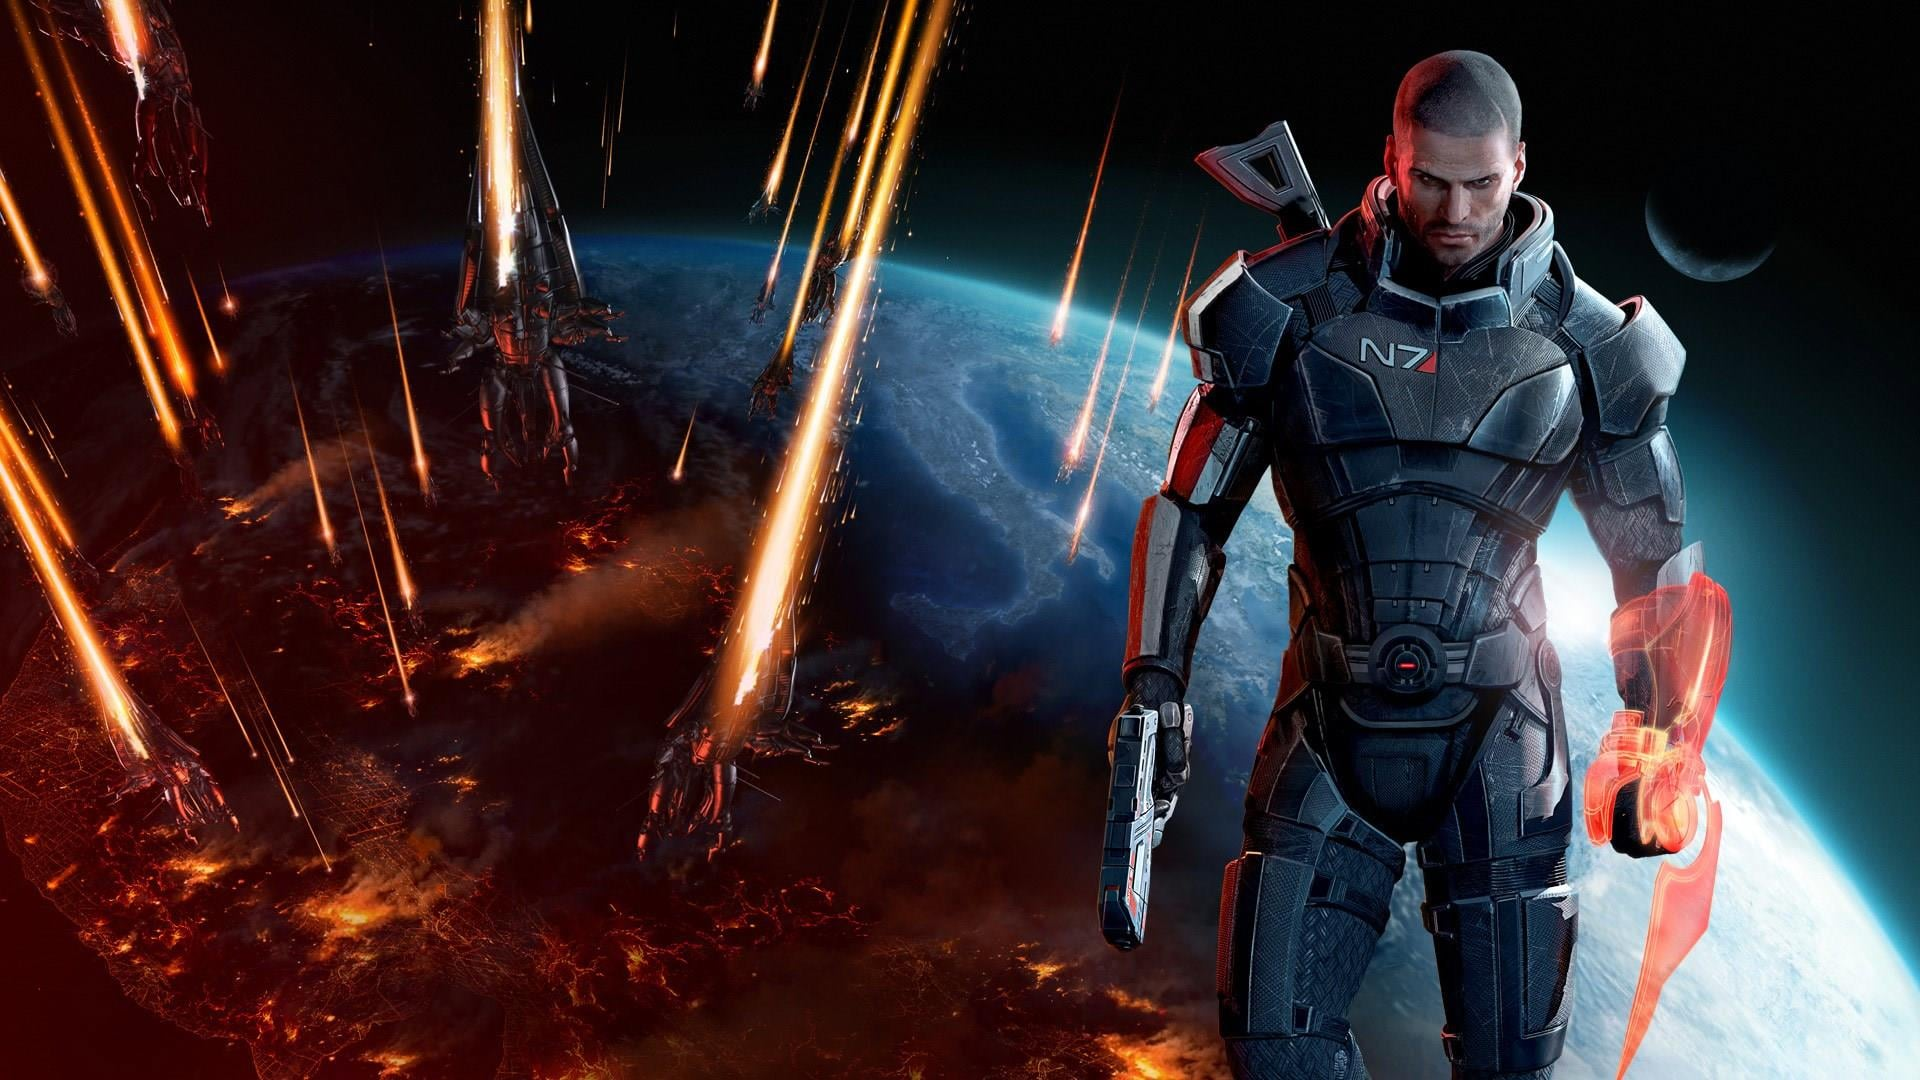 BioWare's GM Casey Hudson and 'Dragon Age' producer are leaving the studio